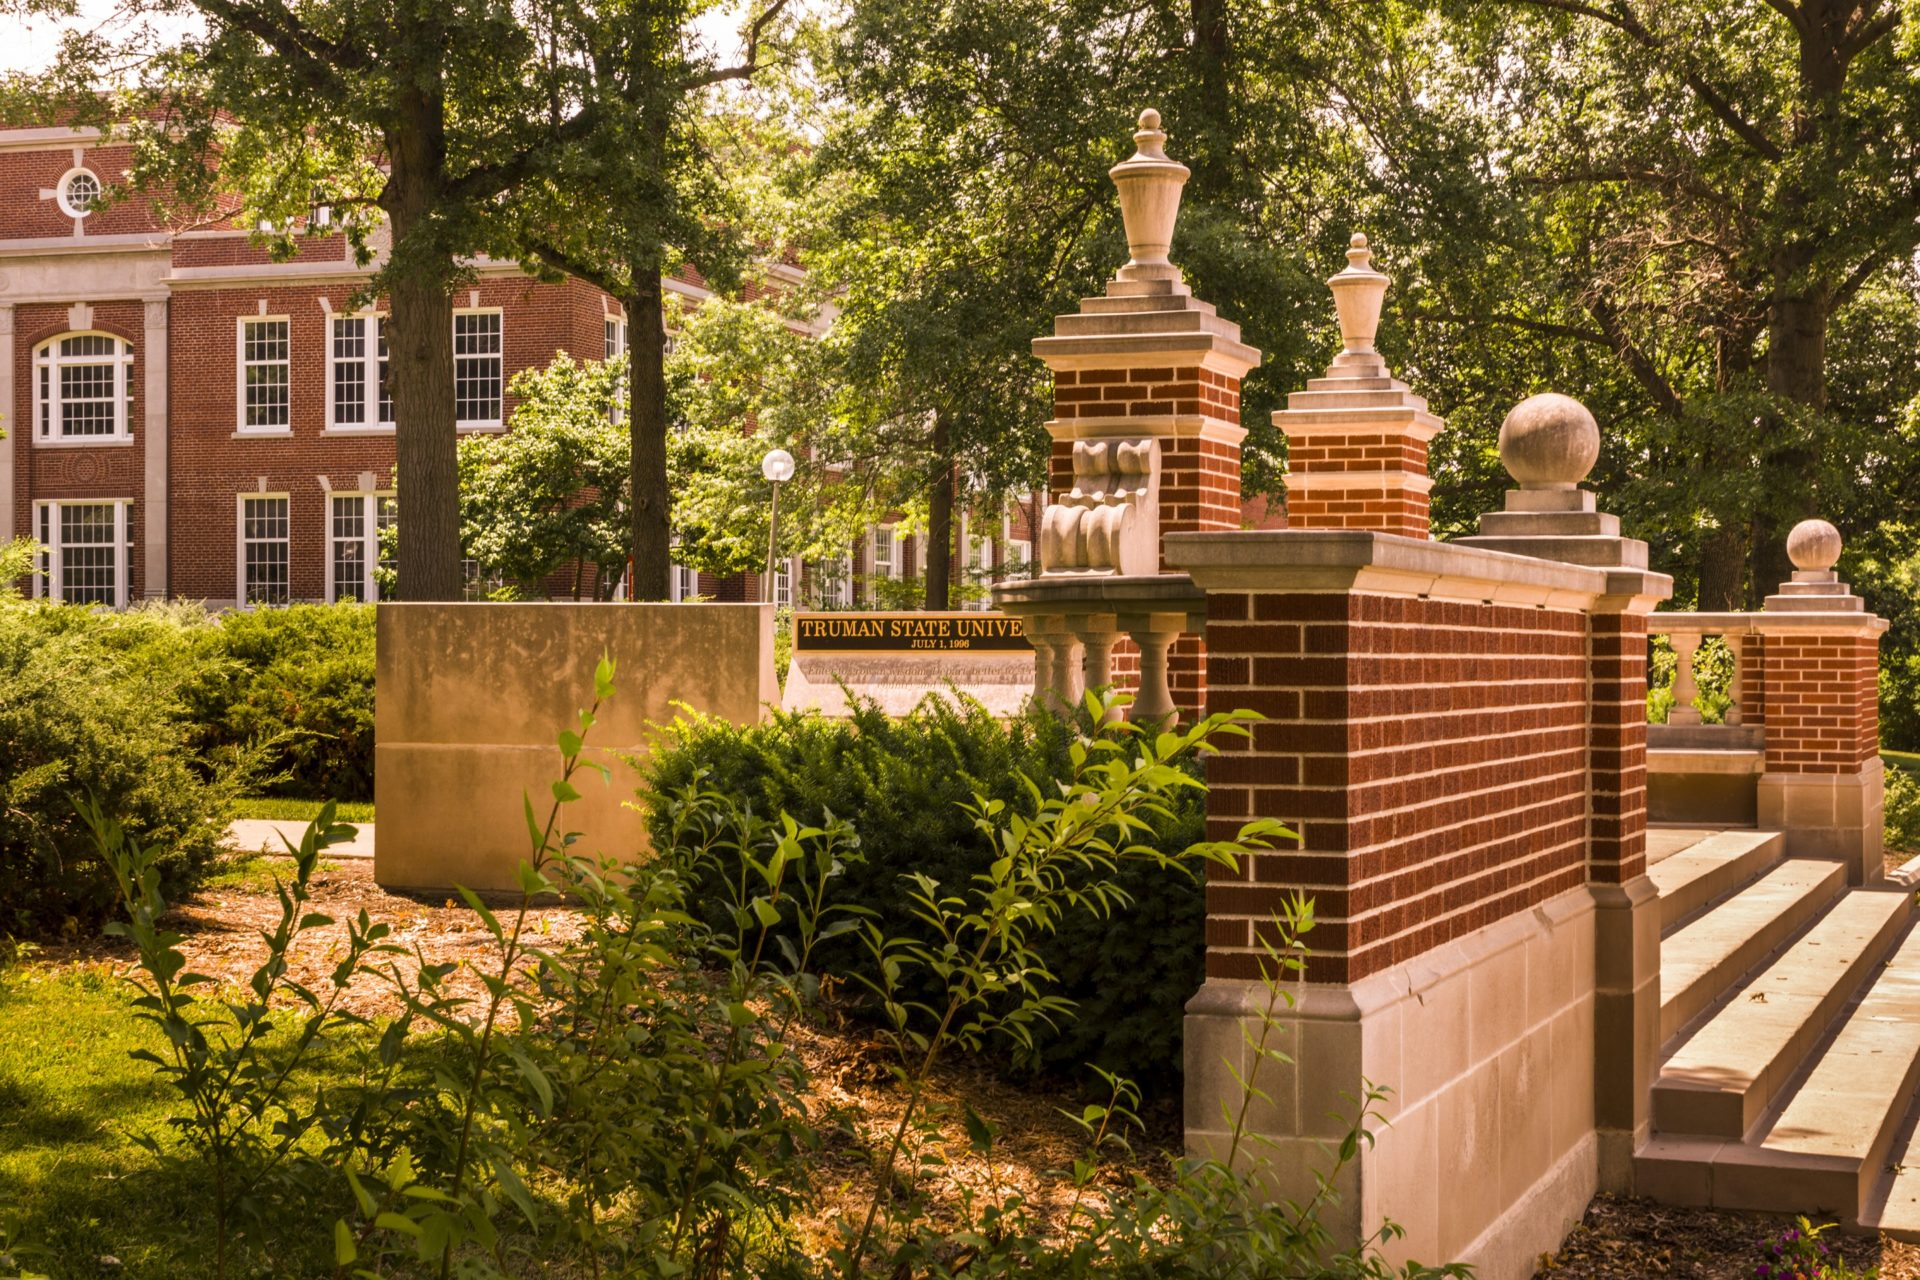 Campus Gates on north edge of the Quad